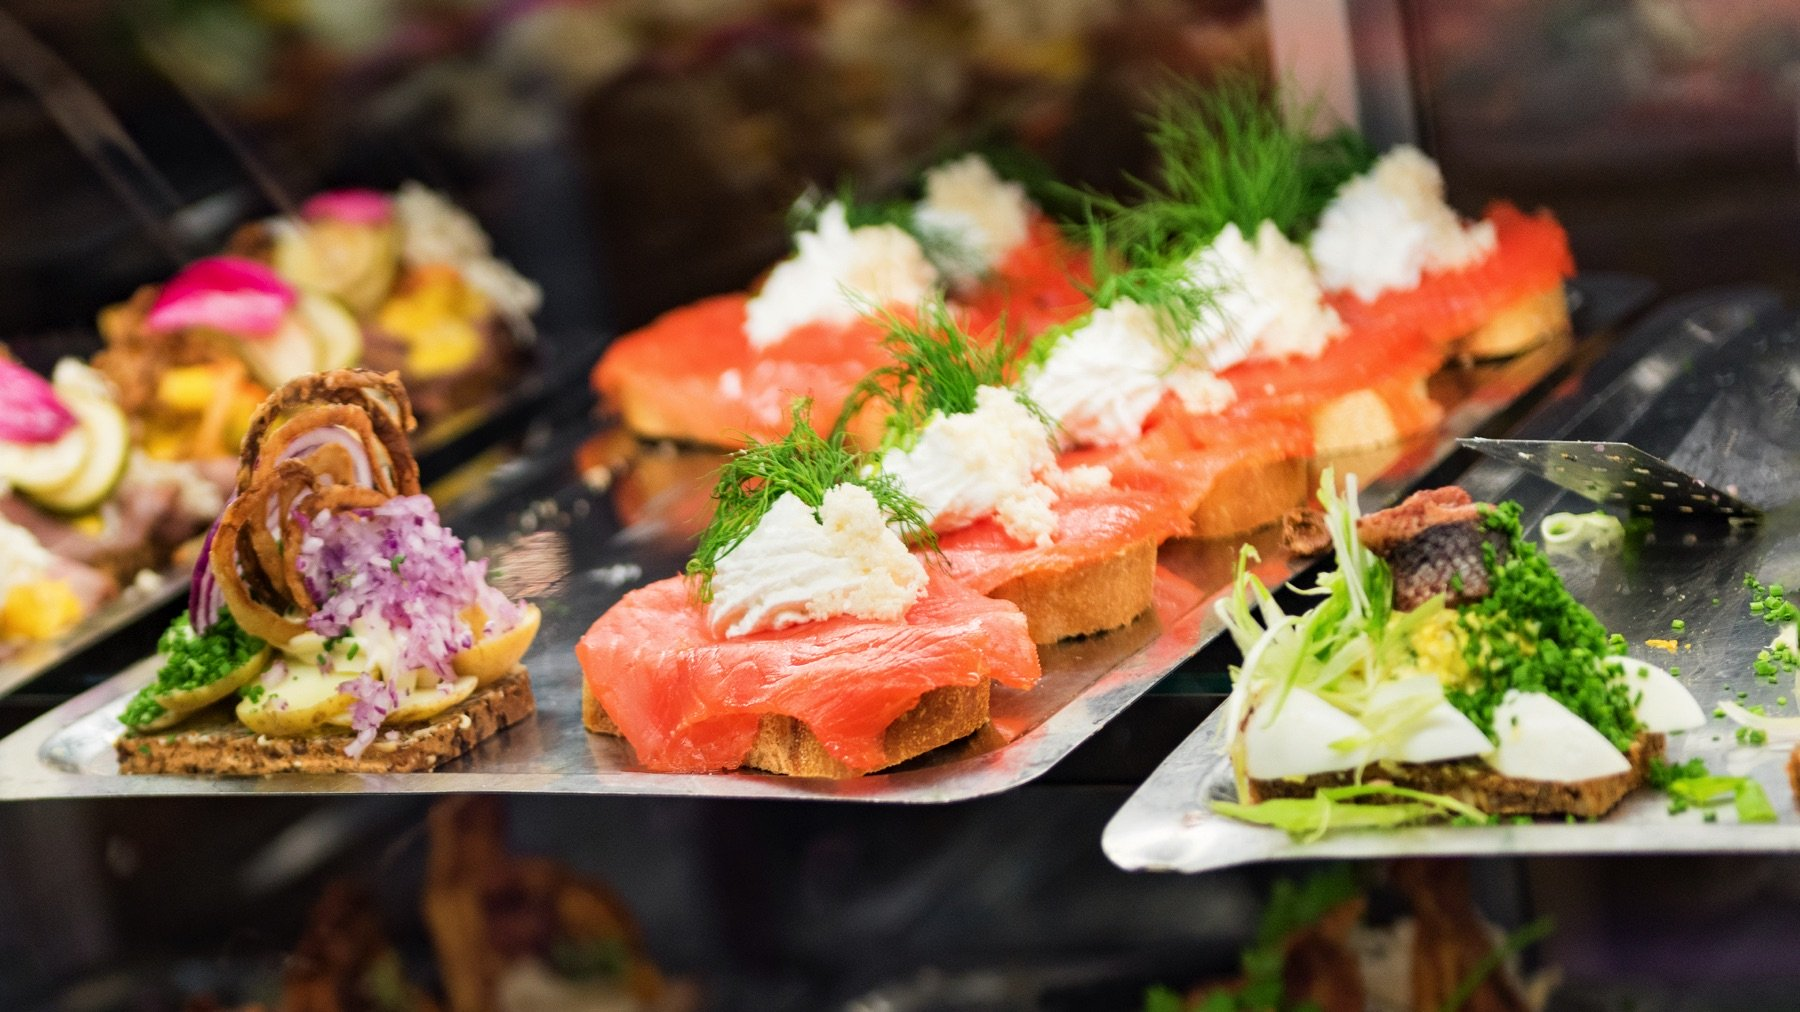 Food in Copenhagen: 10 Must-Try Danish Dishes